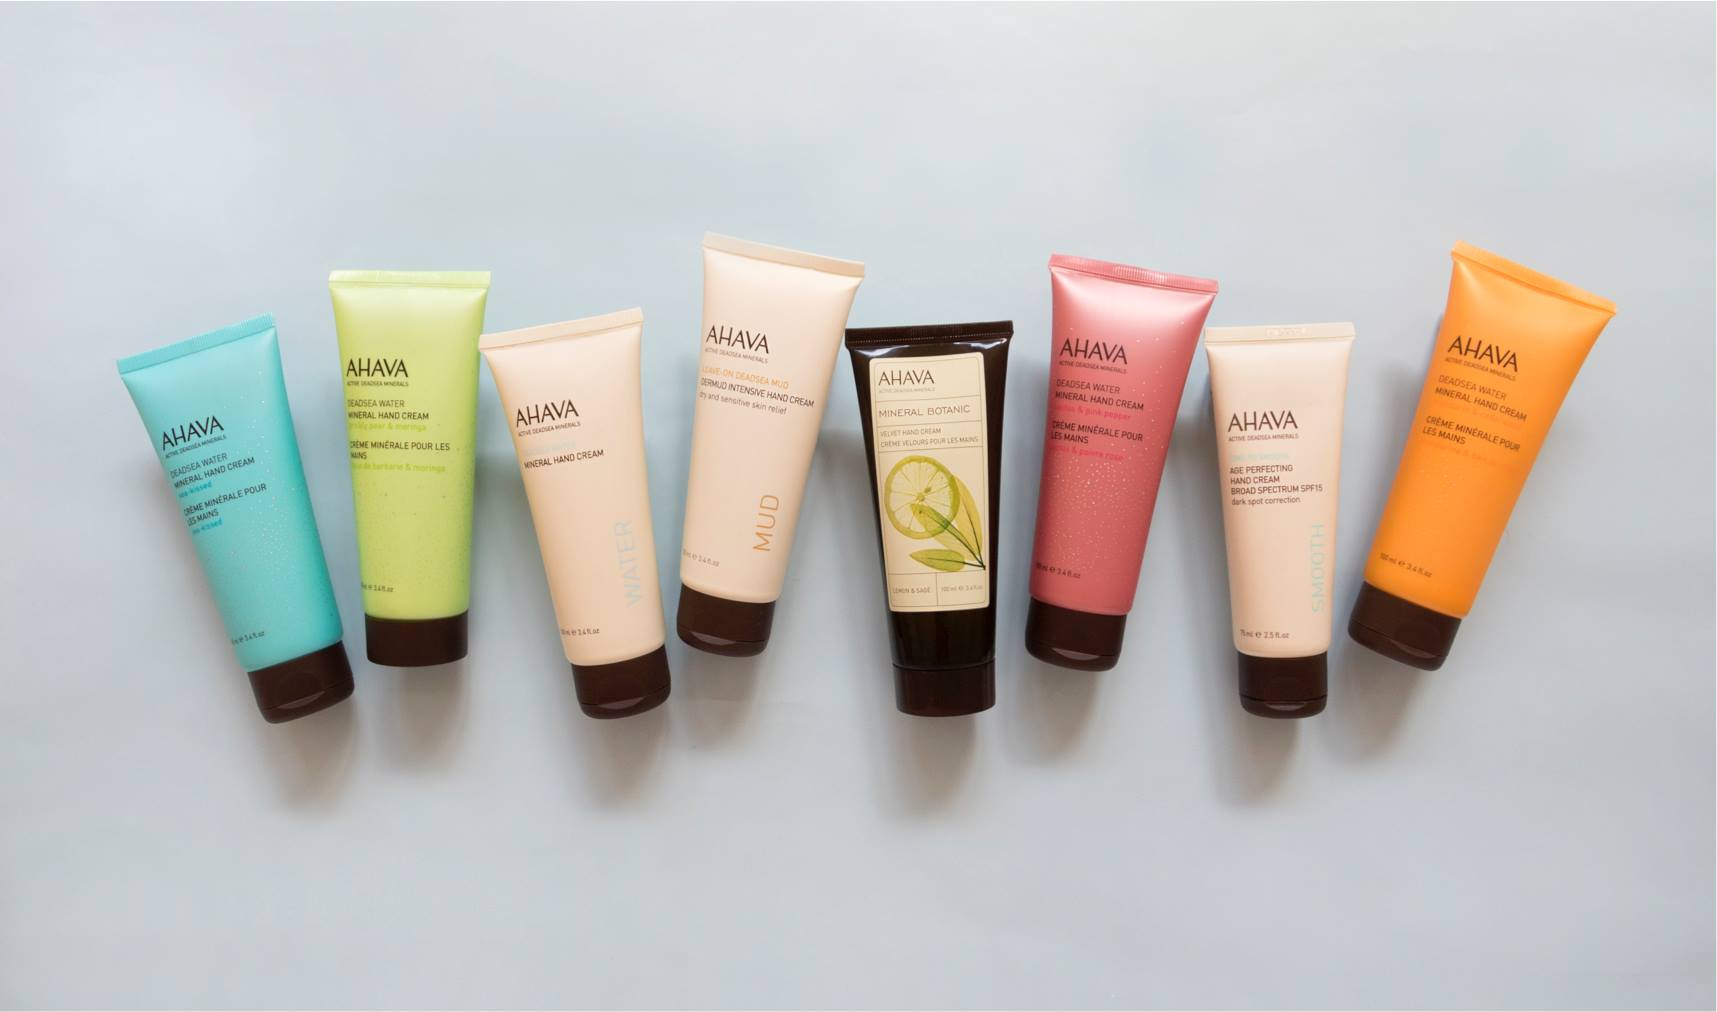 Try AHAVA Hand Cream or Body Cream for FREE